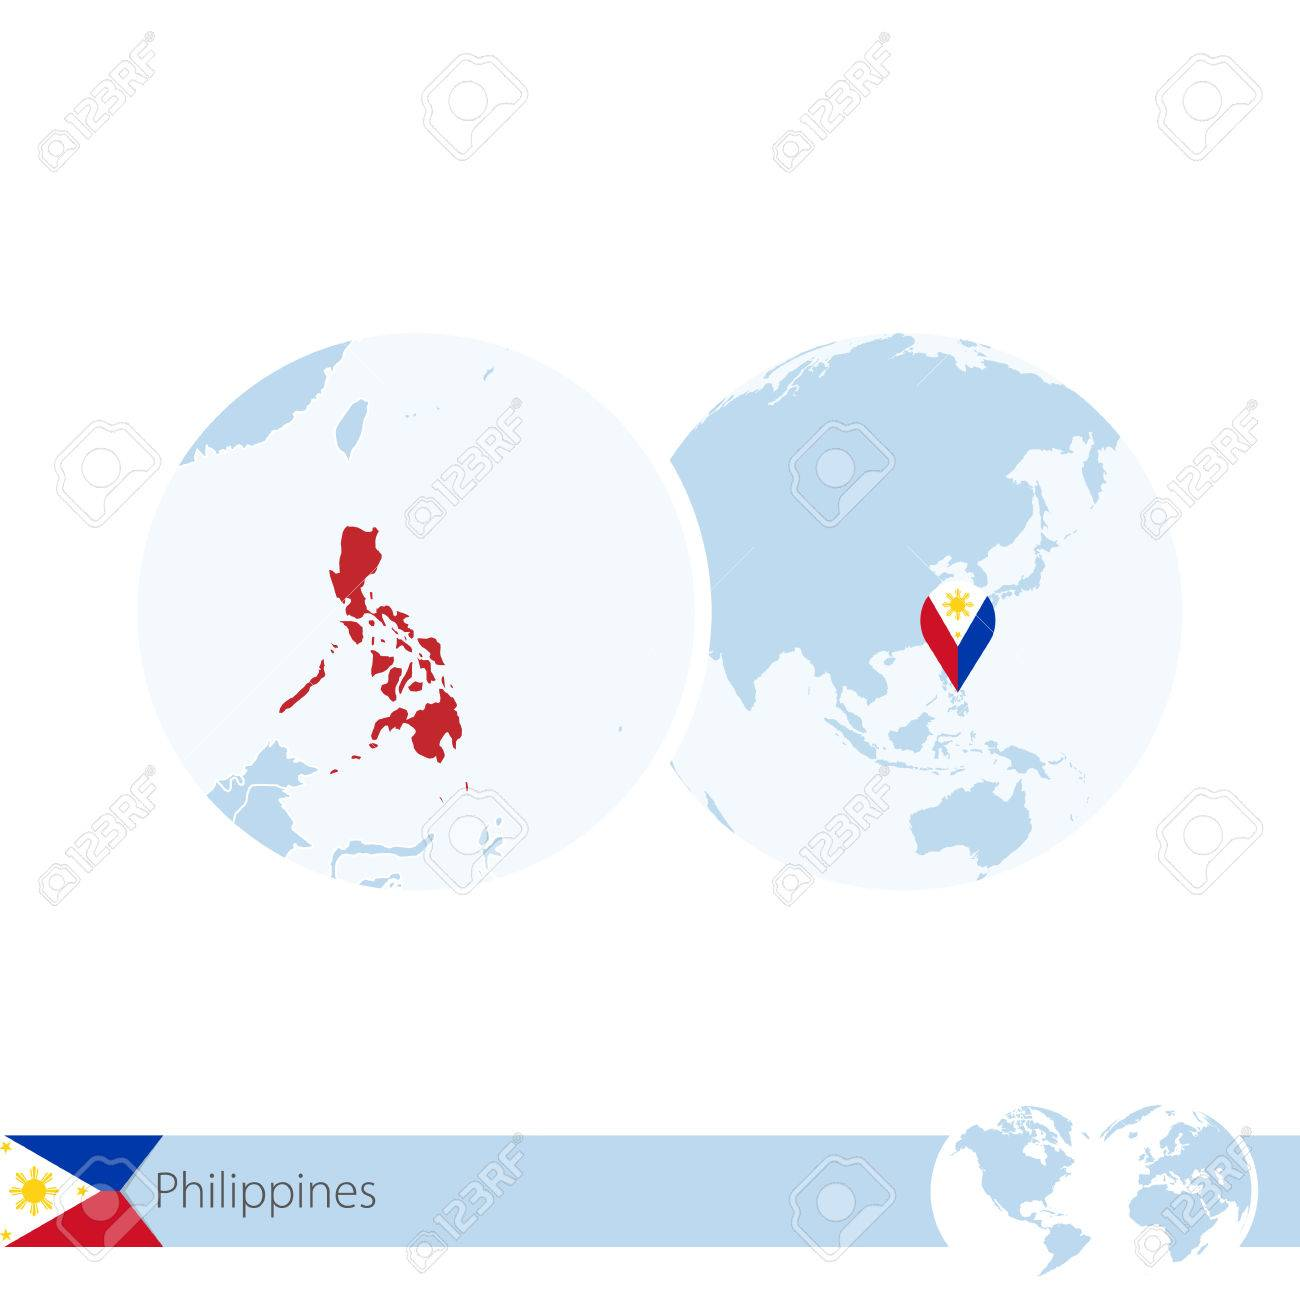 Picture of: Philippines On World Globe With Flag And Regional Map Of Philippines Royalty Free Cliparts Vectors And Stock Illustration Image 66691395